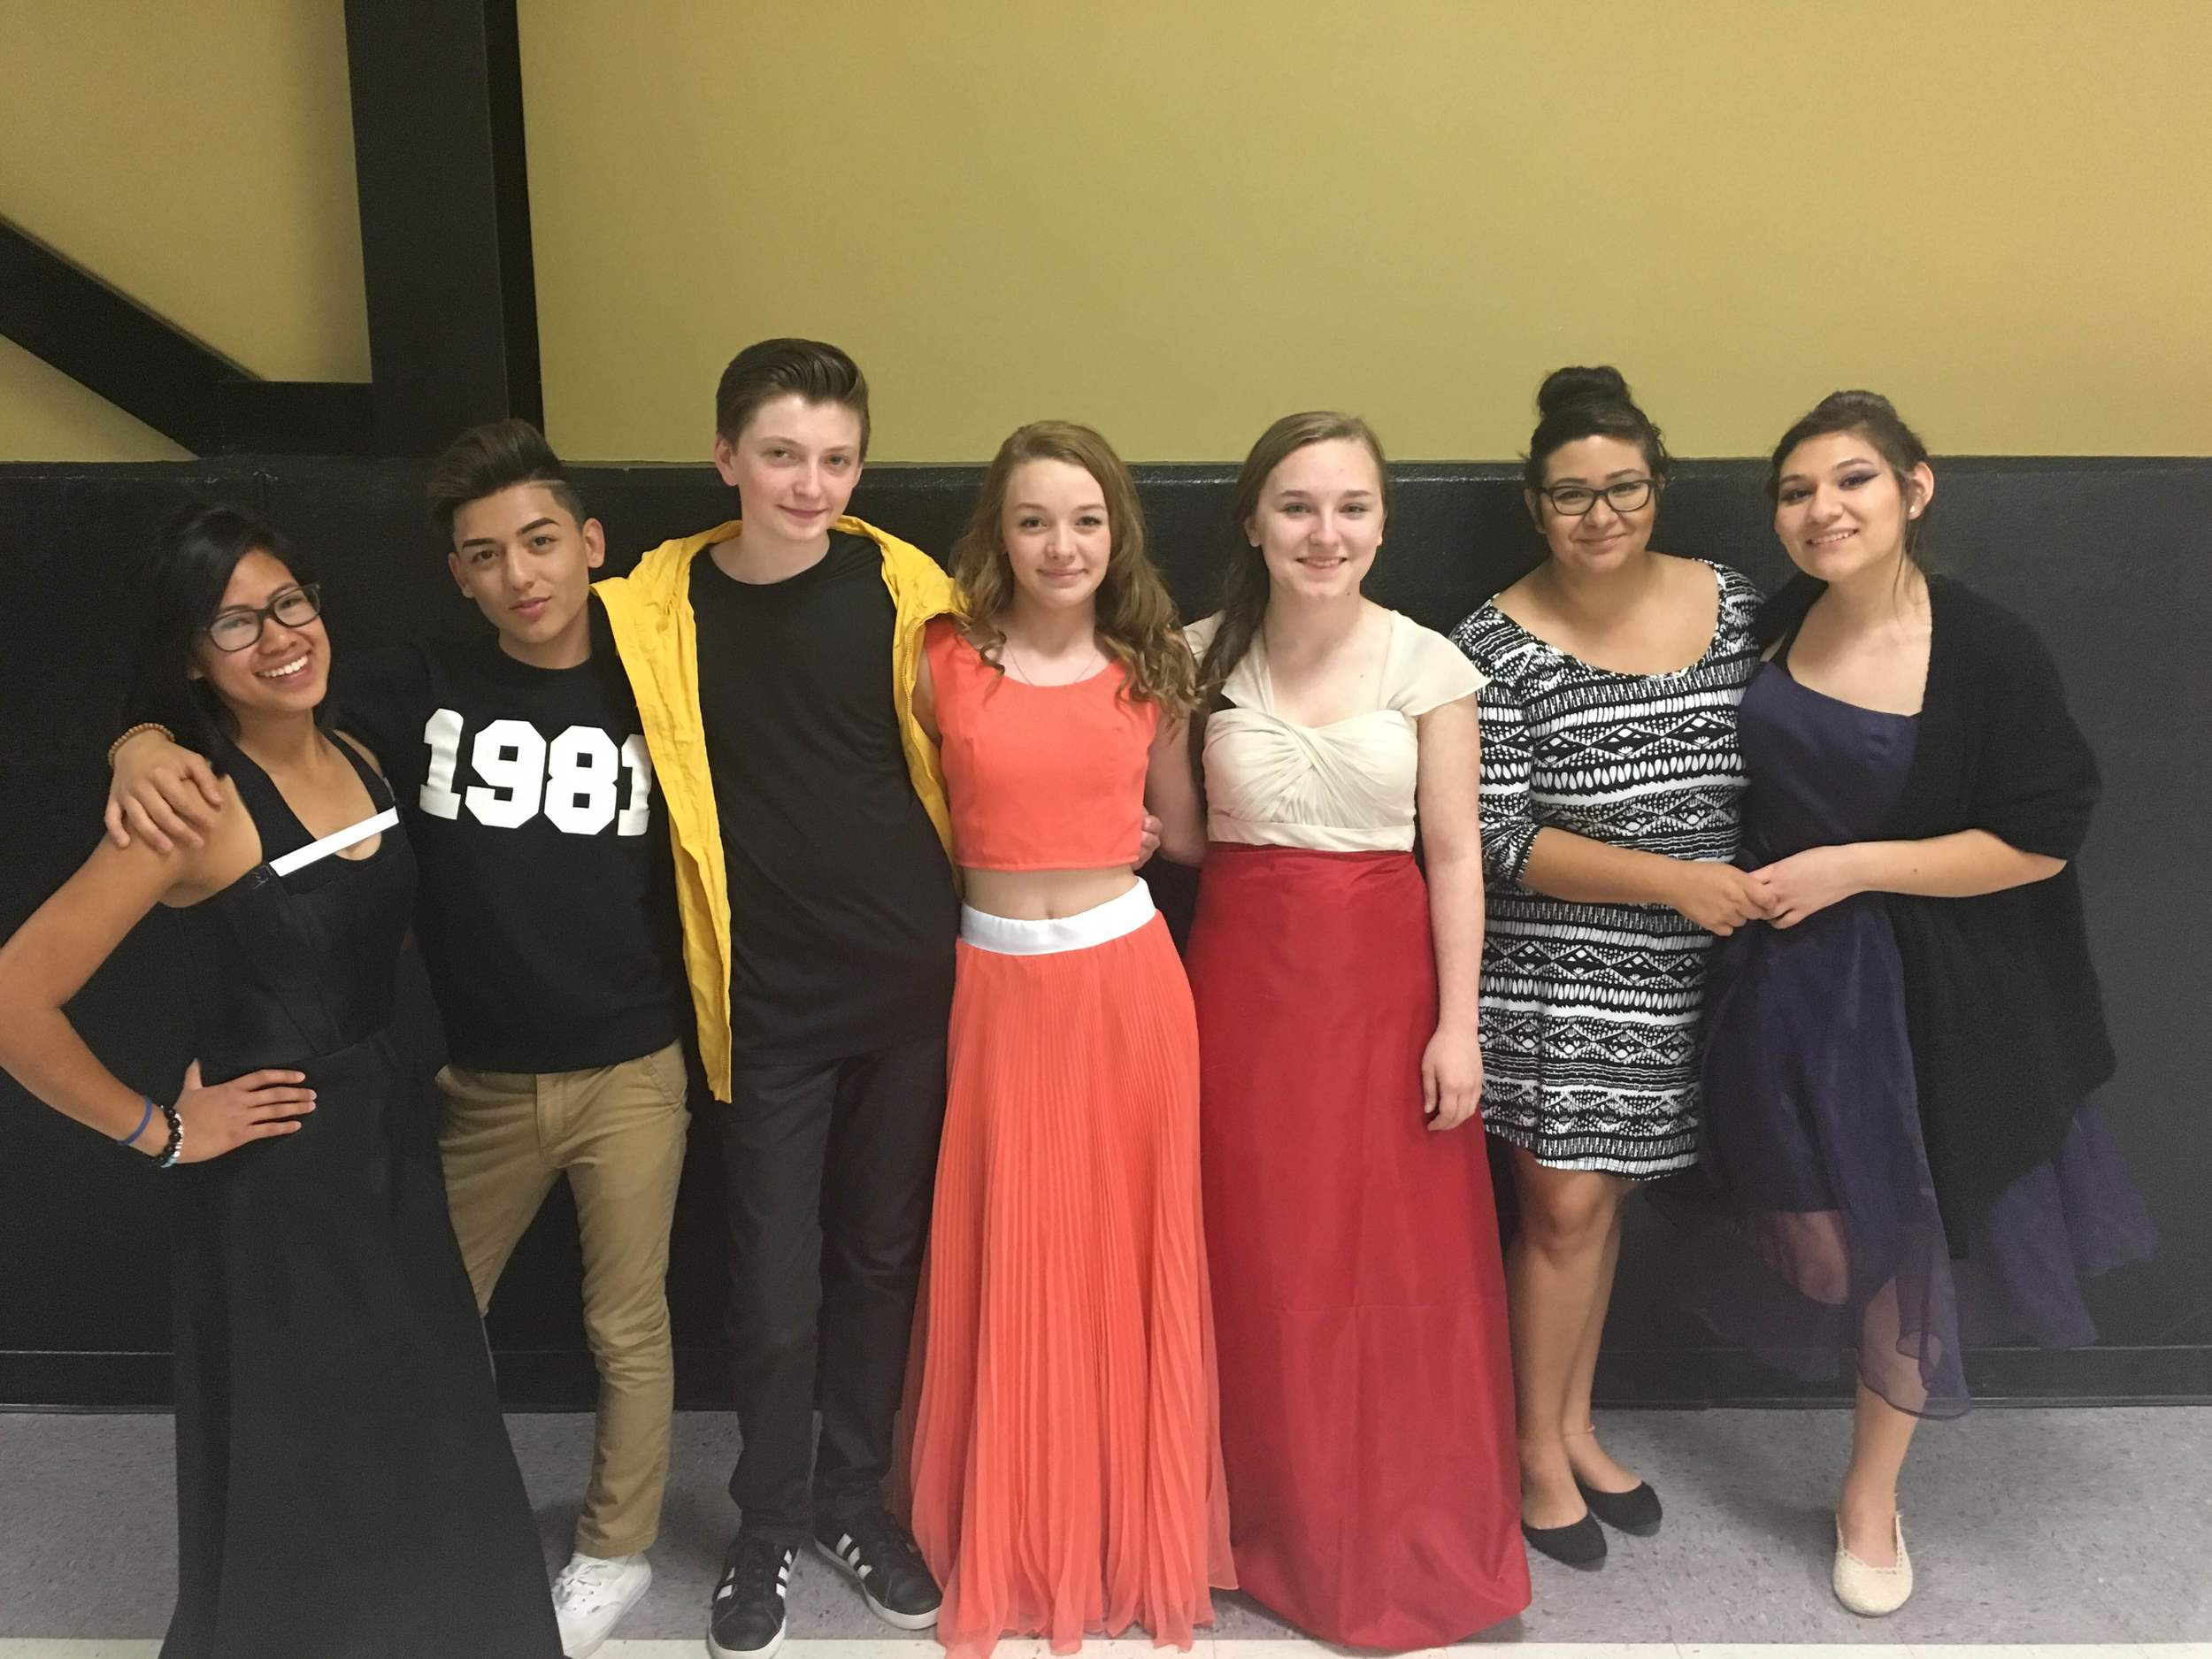 The students created four looks: an elegant black gown on left, the two peach dreams in the middle, and the black and blue beauty on the right.